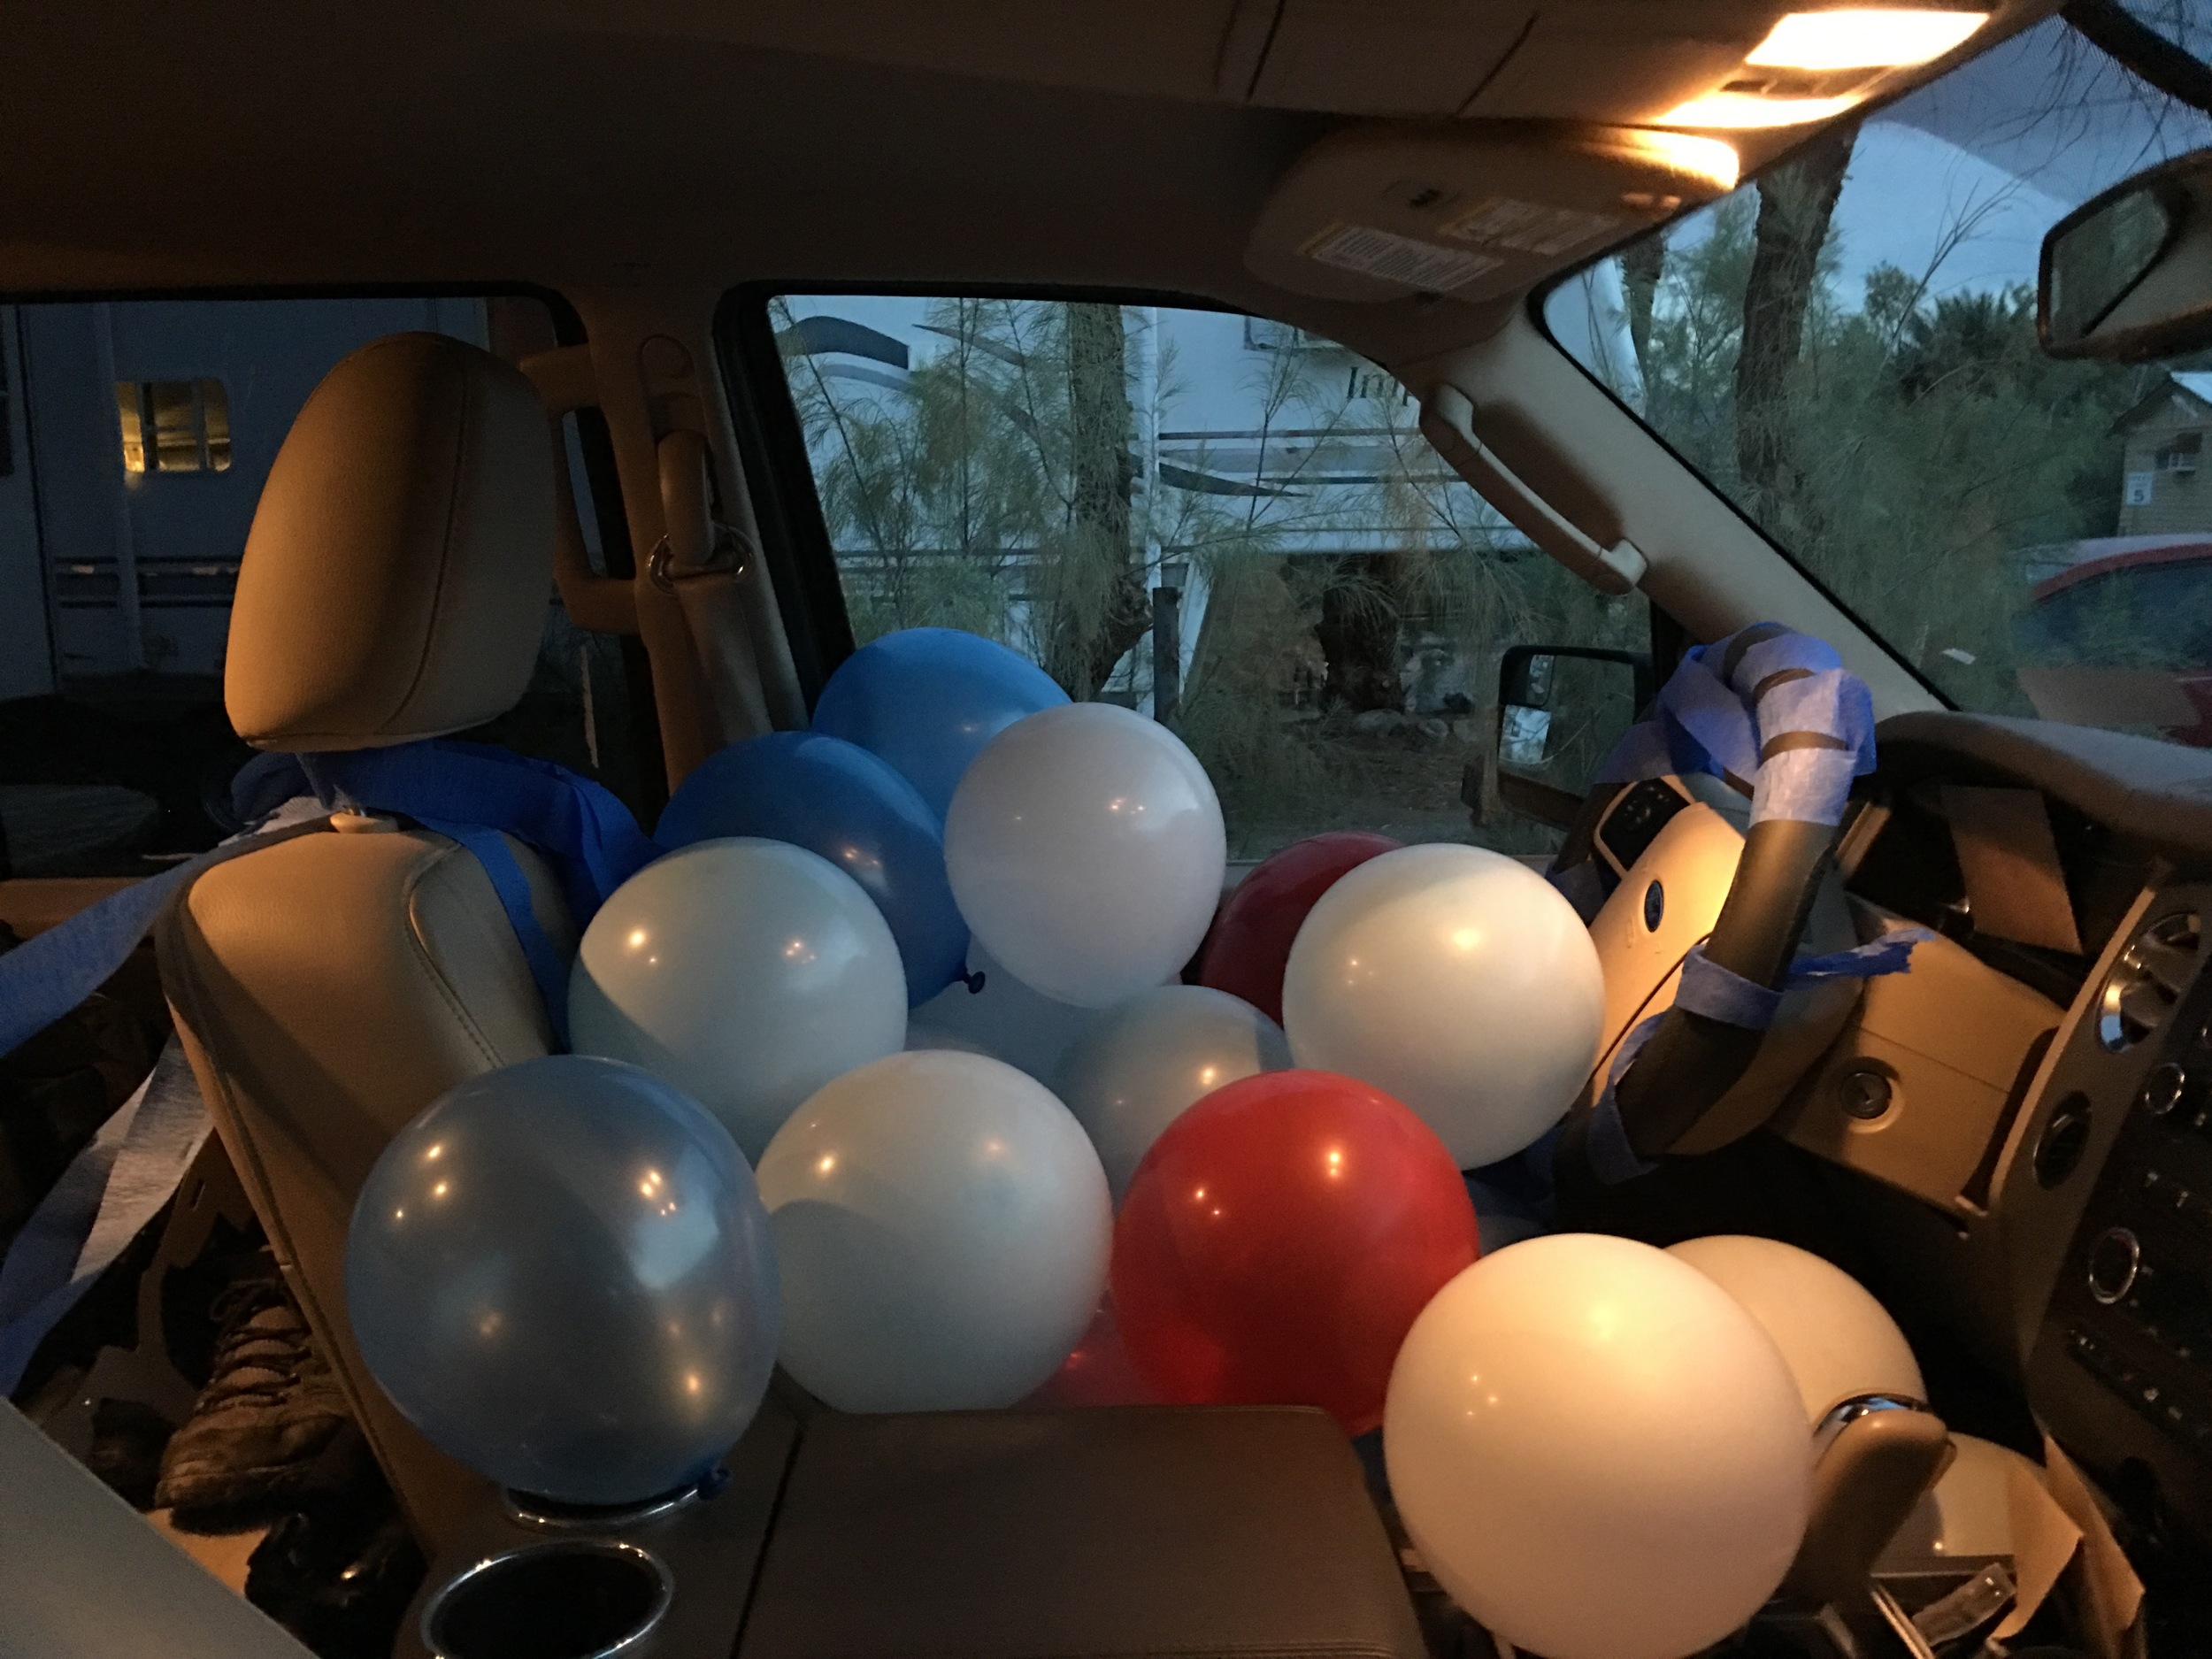 March 5th is Jonny's birthday, so Stef filled the car with balloons at the Furnace Creek campground in Death Valley National Park, California.